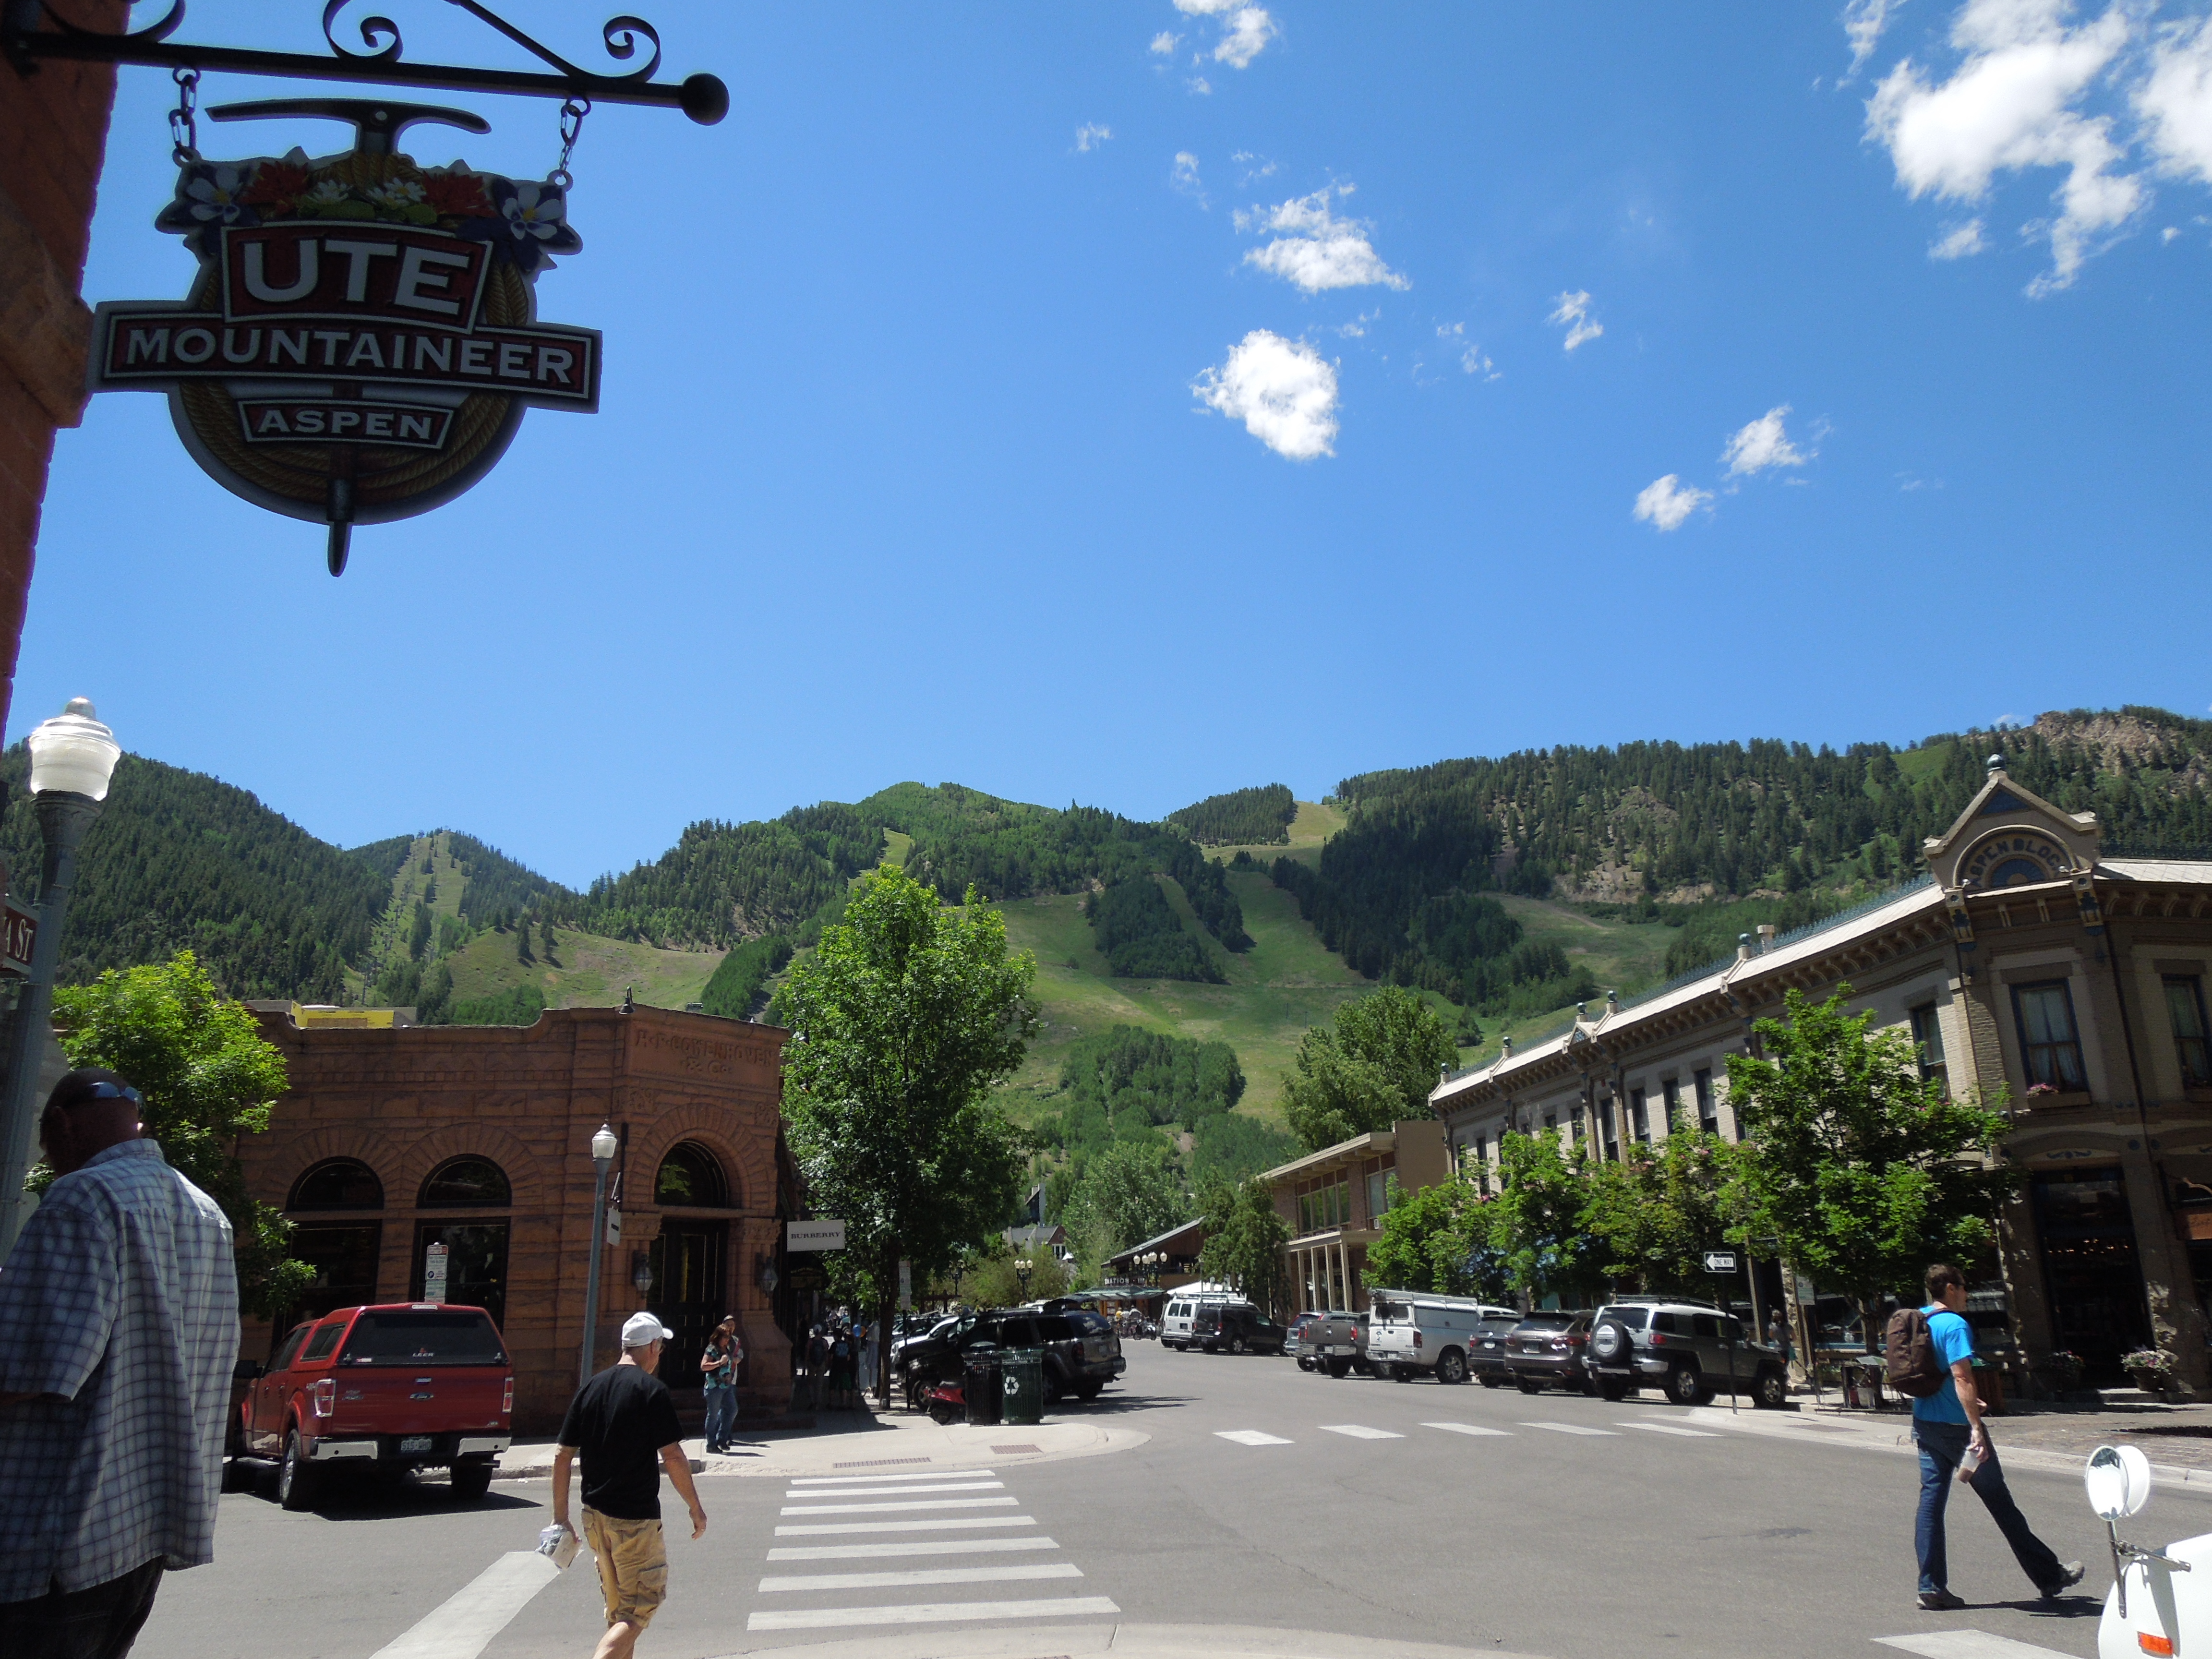 Top 5 Family Activities in Aspen